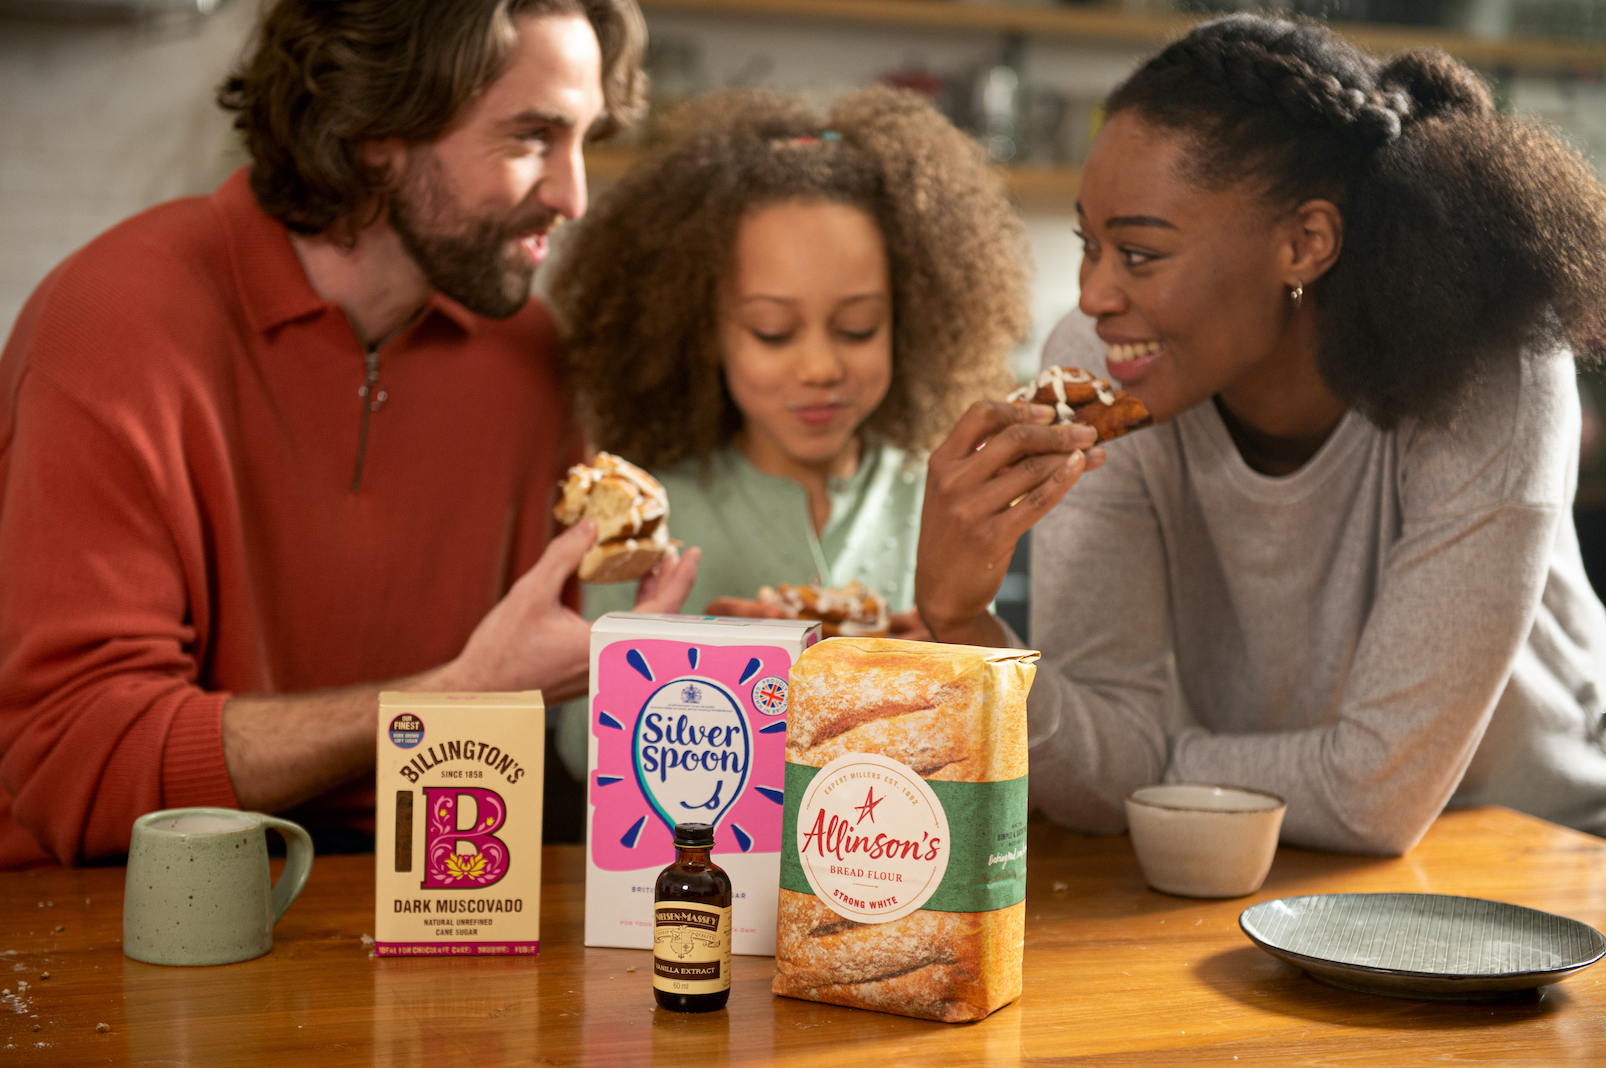 Launching a Cross-Brand Campaign at Scale for Associated British Foods